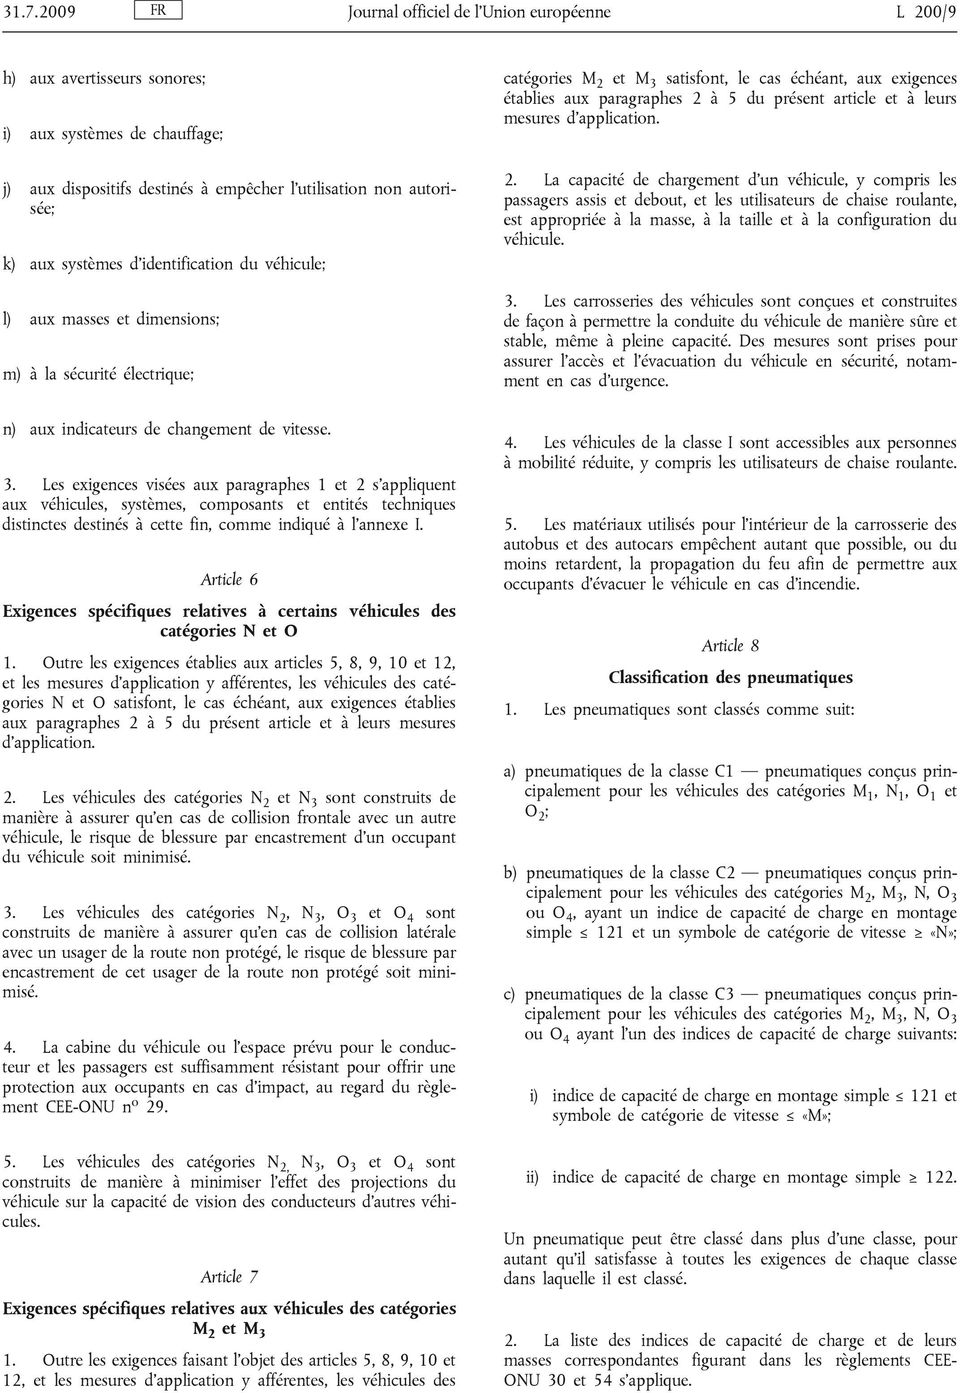 article et à leurs mesures d application. 2.